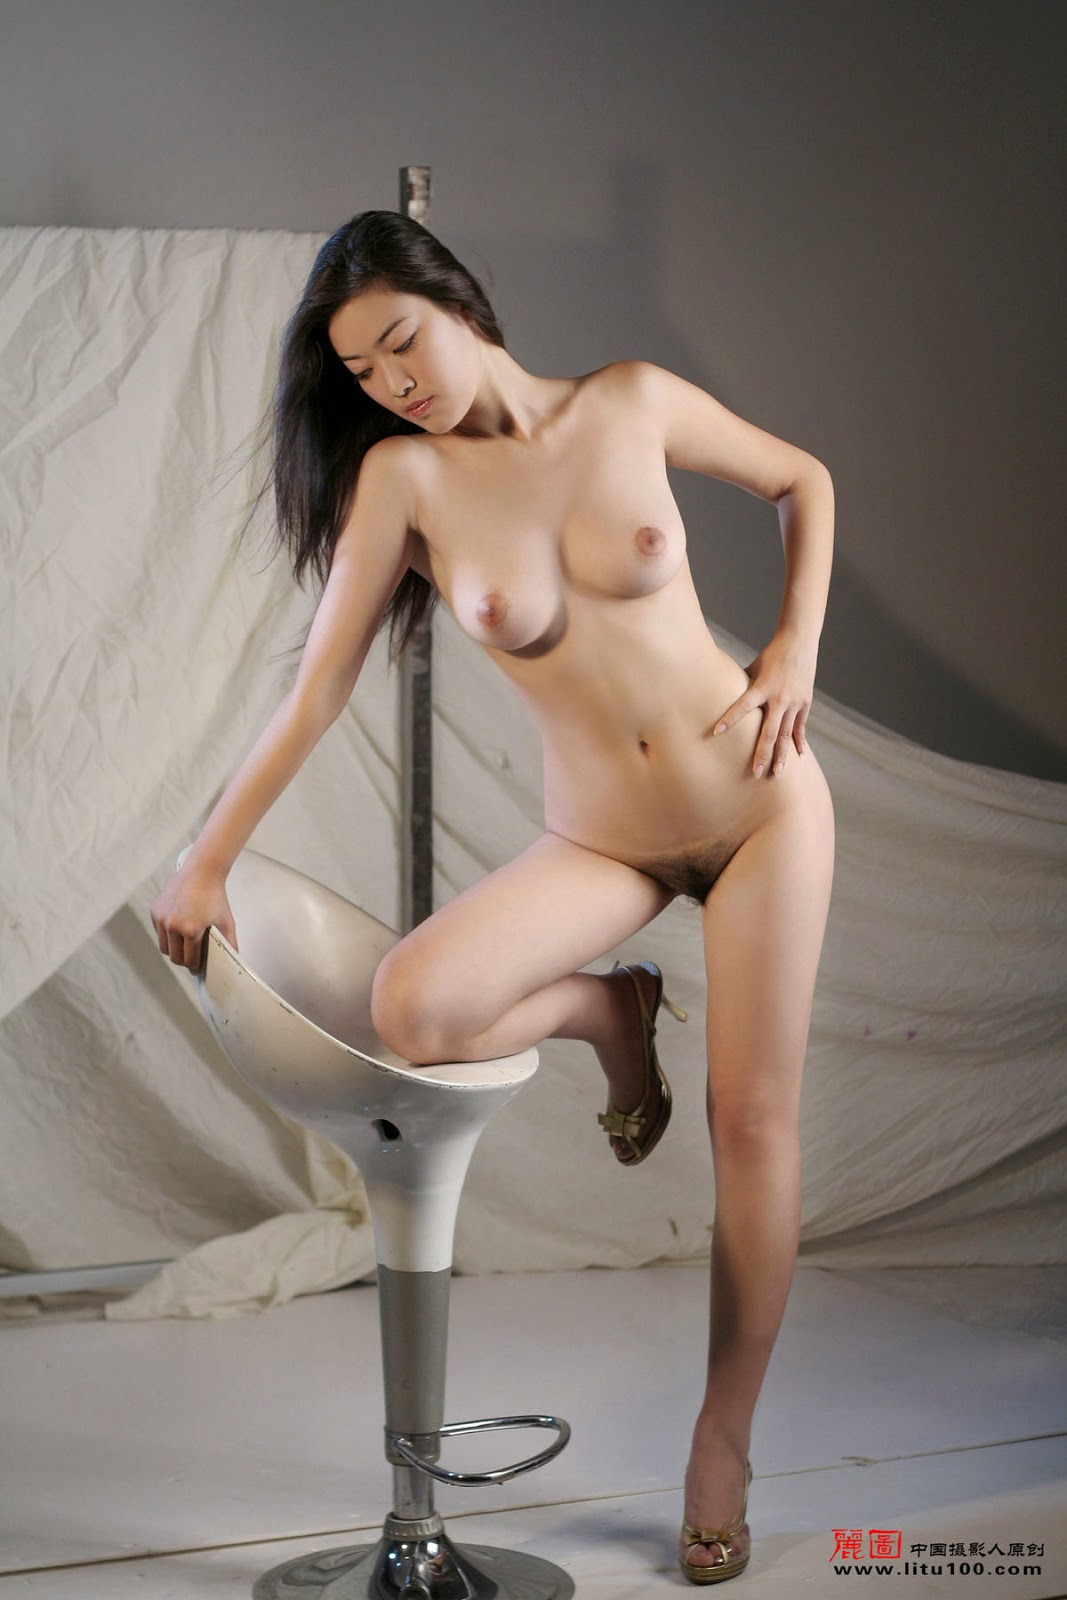 image Super cute chinese model private shoot leaked she is so hot